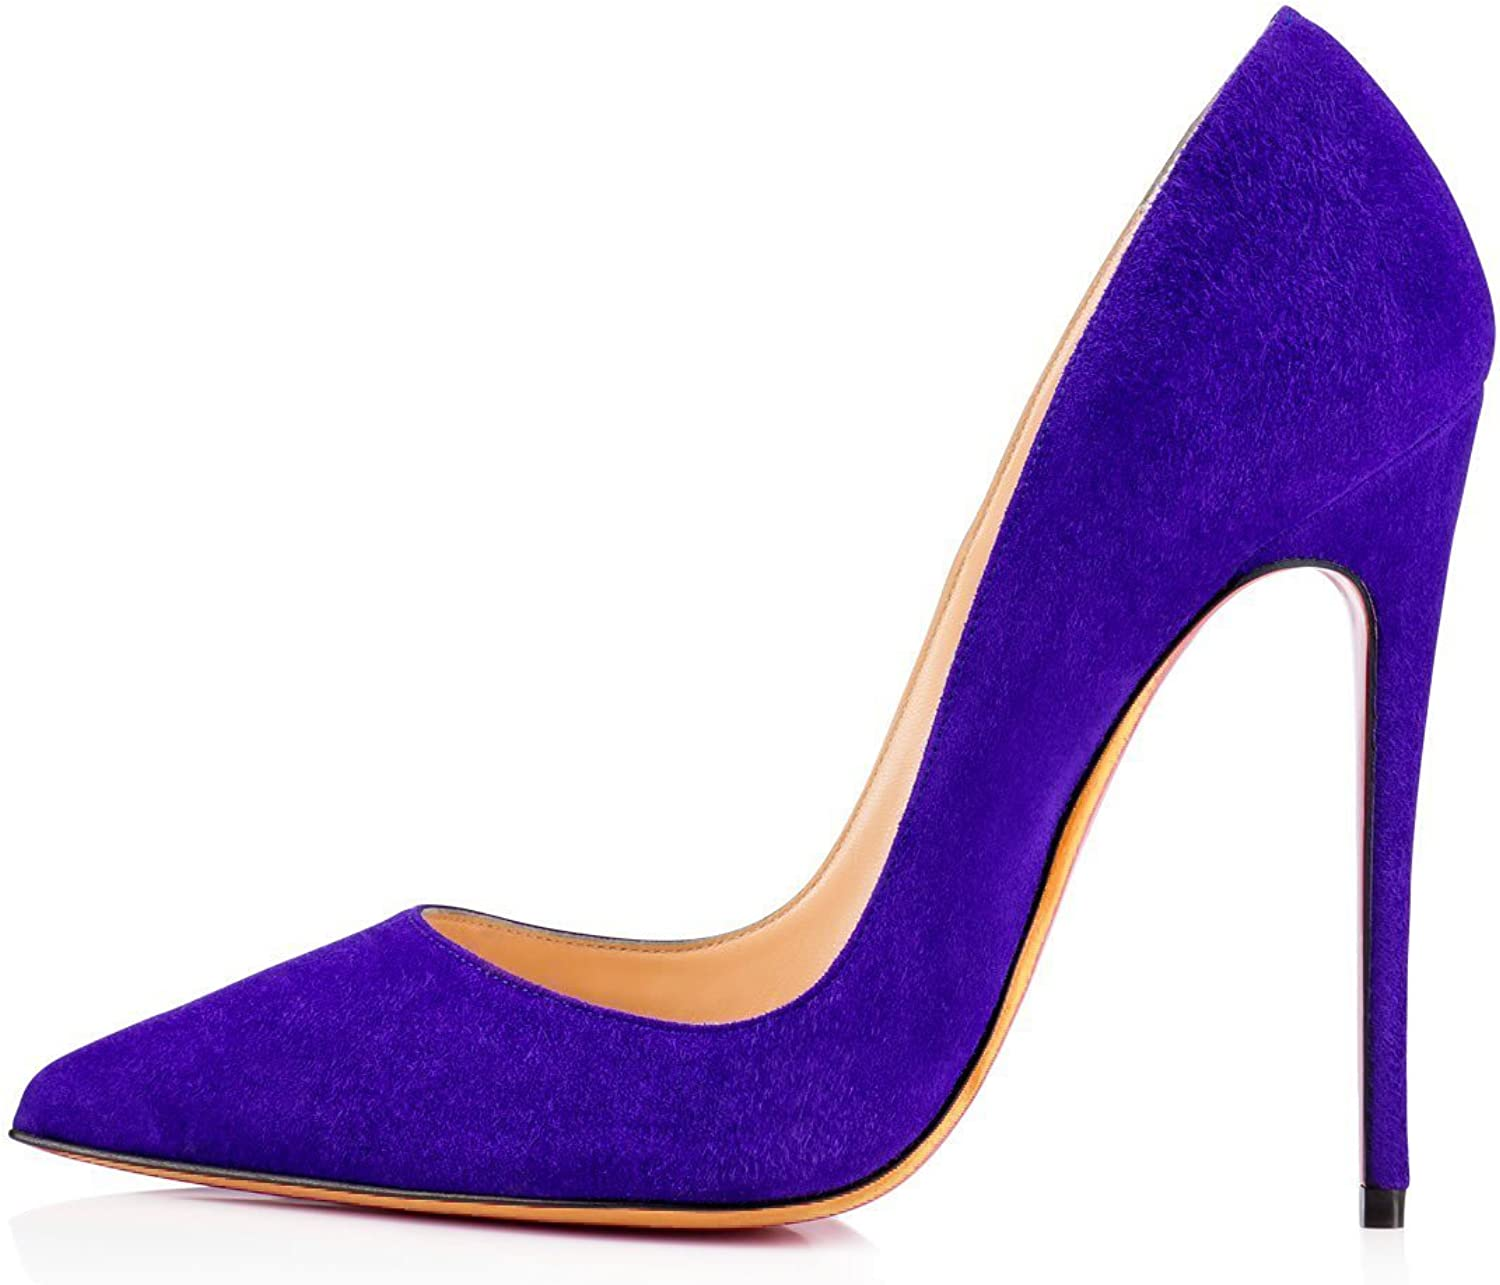 Nansay Women's shoes Stiletto Pumps Big Size Ladies shoes Solid Pointed Toe Pumps for Party Prom